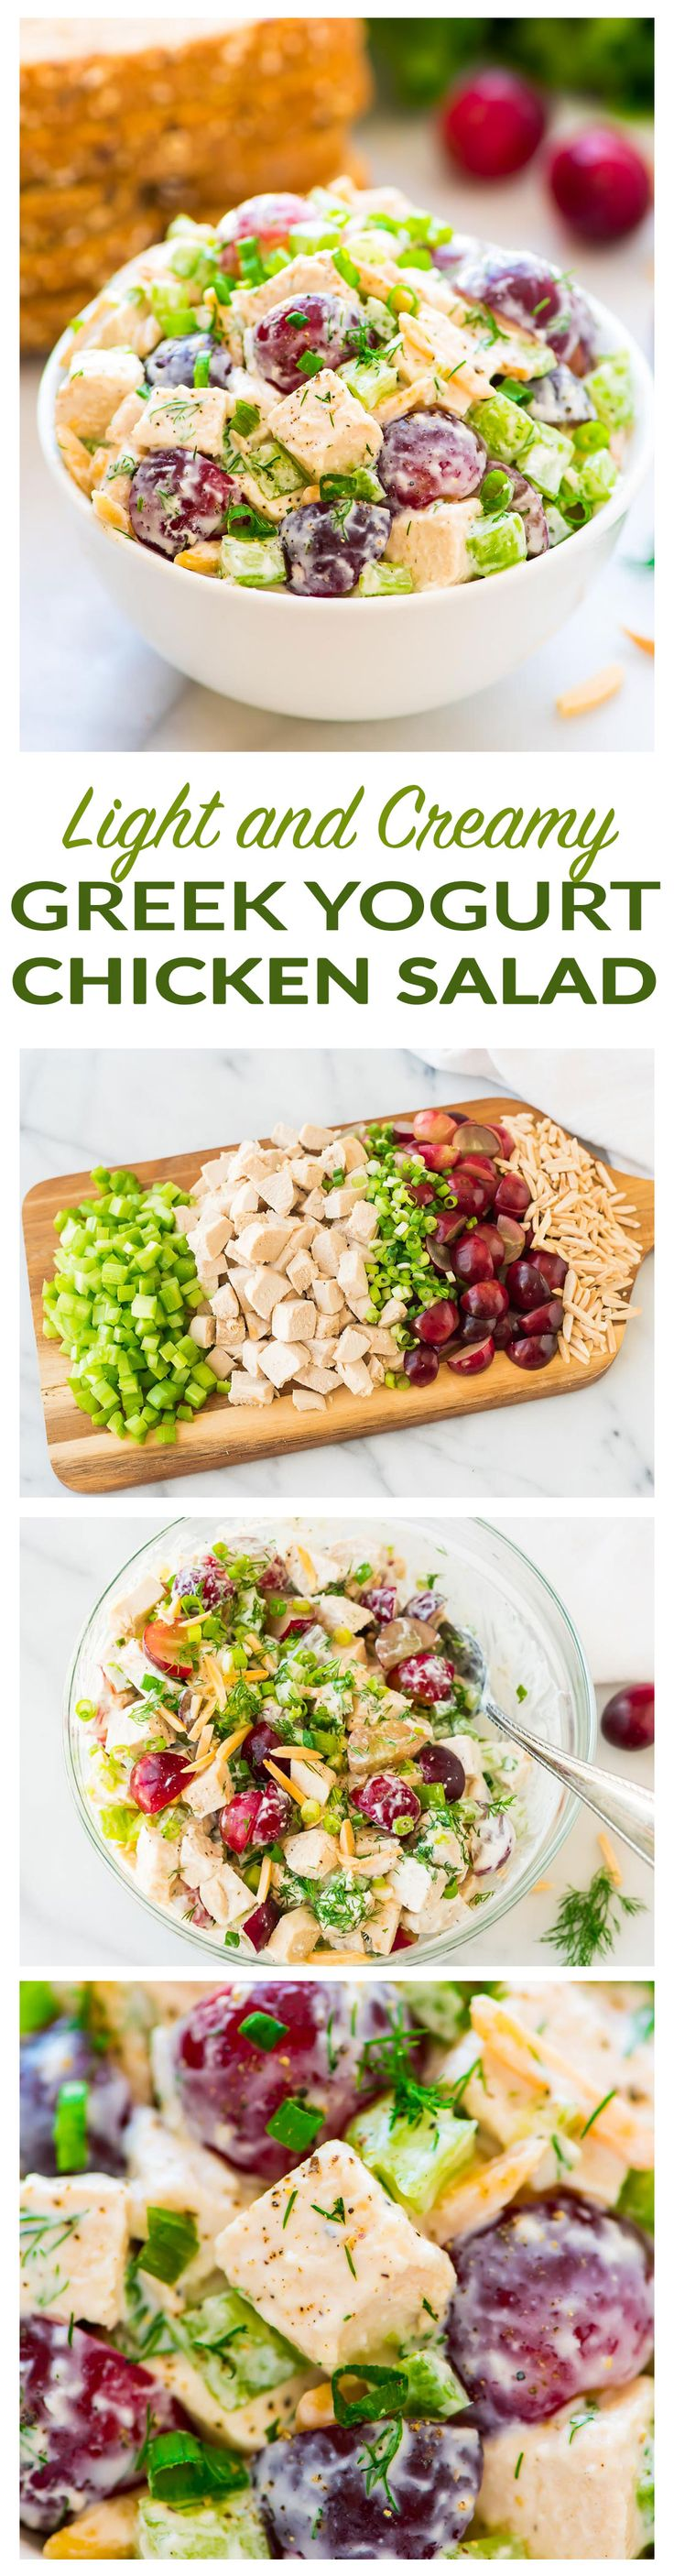 Skinny Greek Yogurt Chicken Salad with Grapes, Celery, and Fresh Dill. Creamy, cool, and crunchy! A quick, easy, healthy recipe that's perfect for sandwiches and salads. Omit honey for the 21 Day Fix  (21 Day Fix Recipes Vegetables)